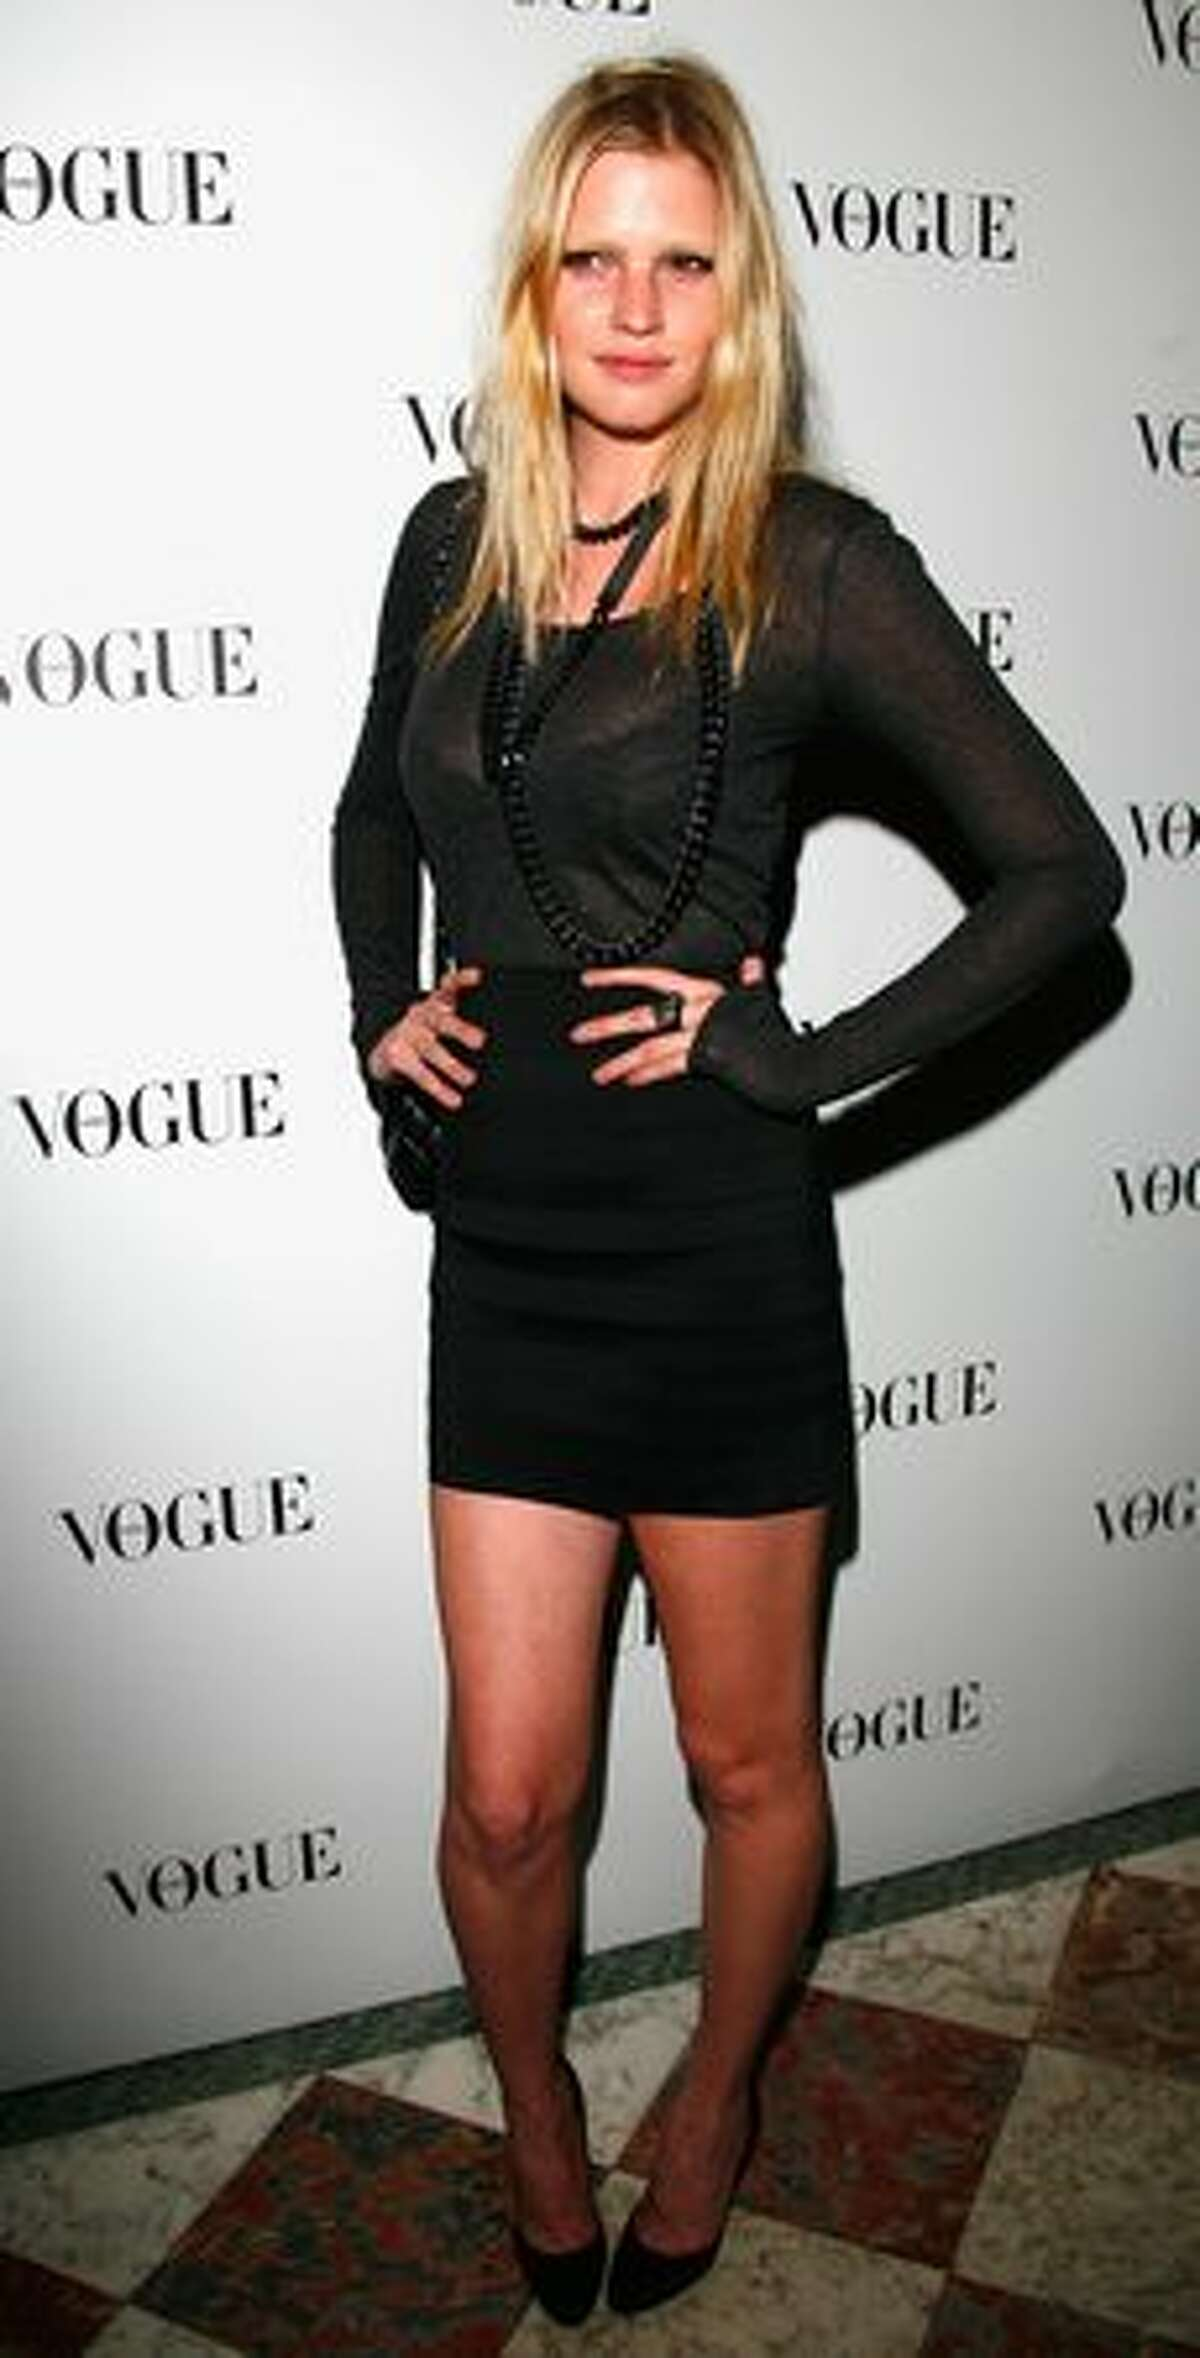 Model Lara Stone's size 4 figure has created some controversy in the modeling world. She is seen at an event in Paris in this October 2009 file photo.